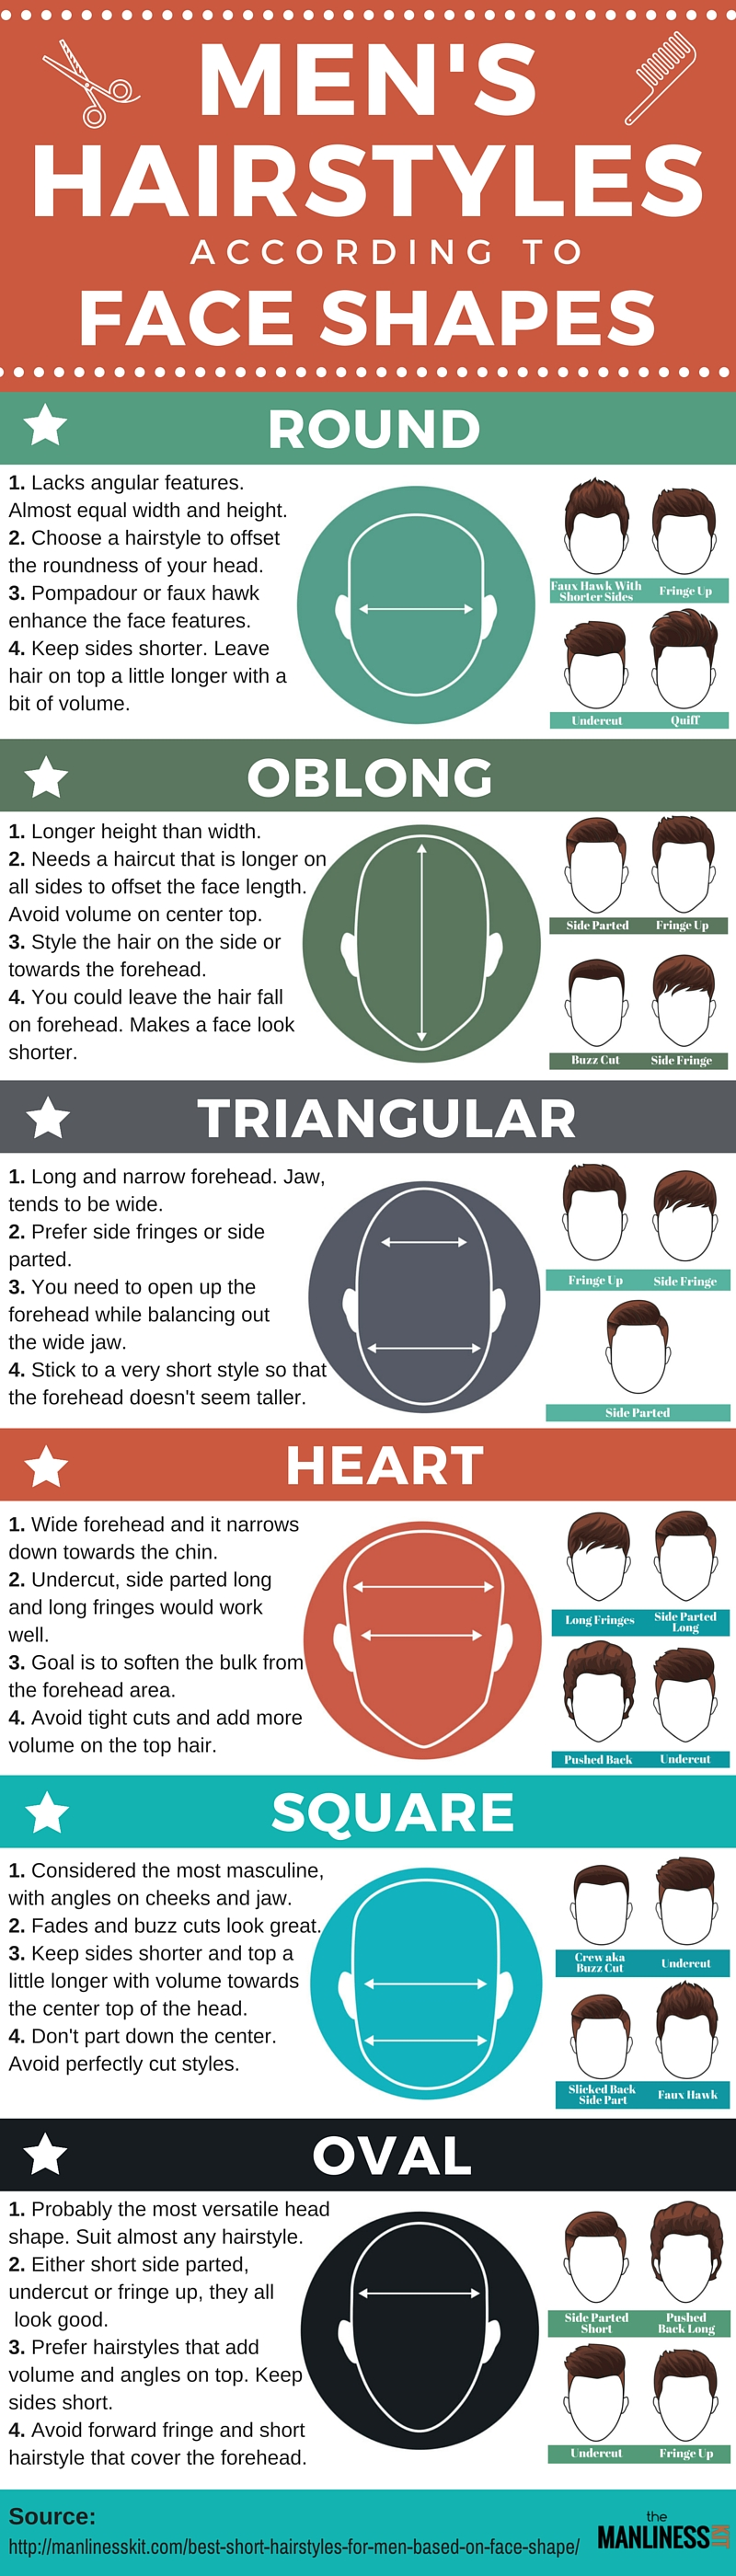 the best short hairstyles for men based on face shape. the go-to